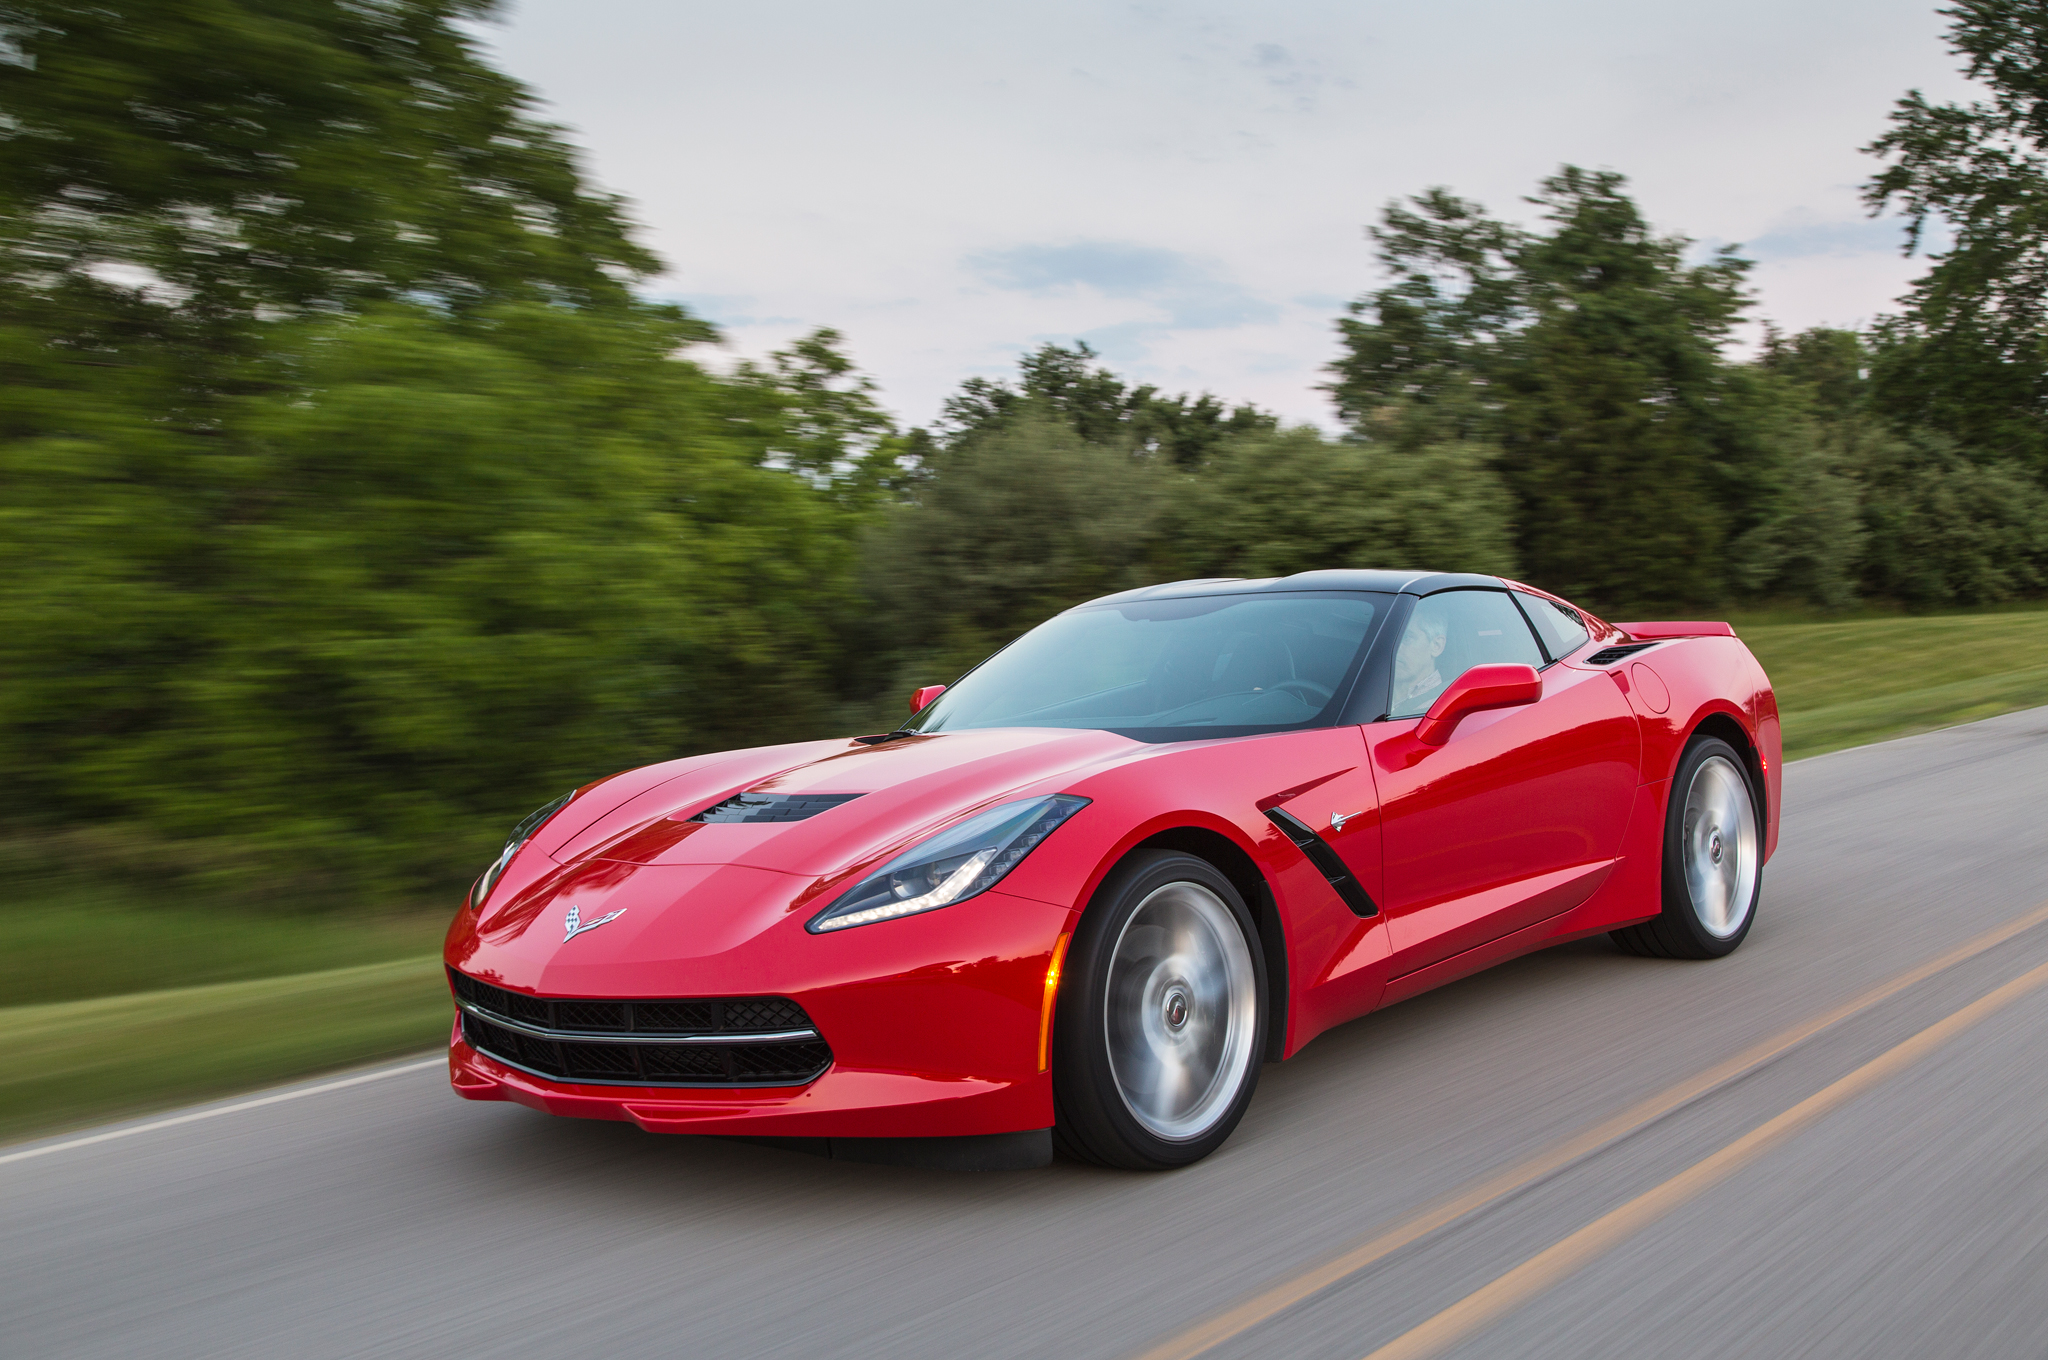 Fastest Corvette Models - Corvette Stingray Z51